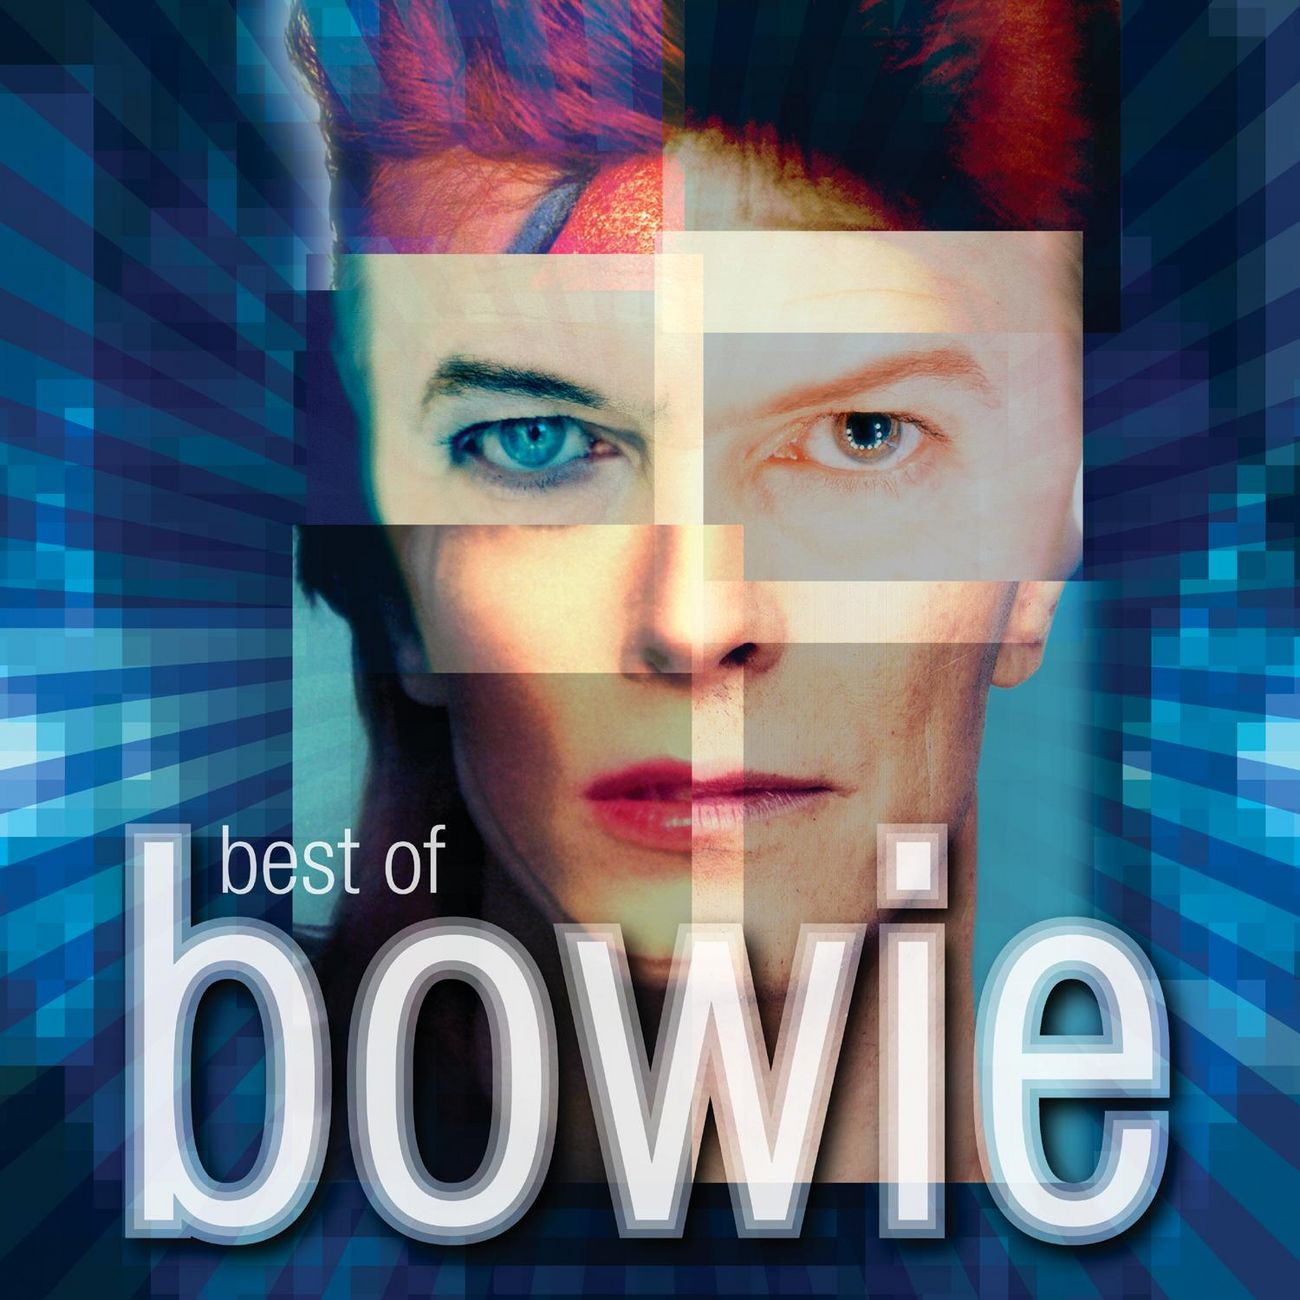 Best of Bowie (Deluxe edition)